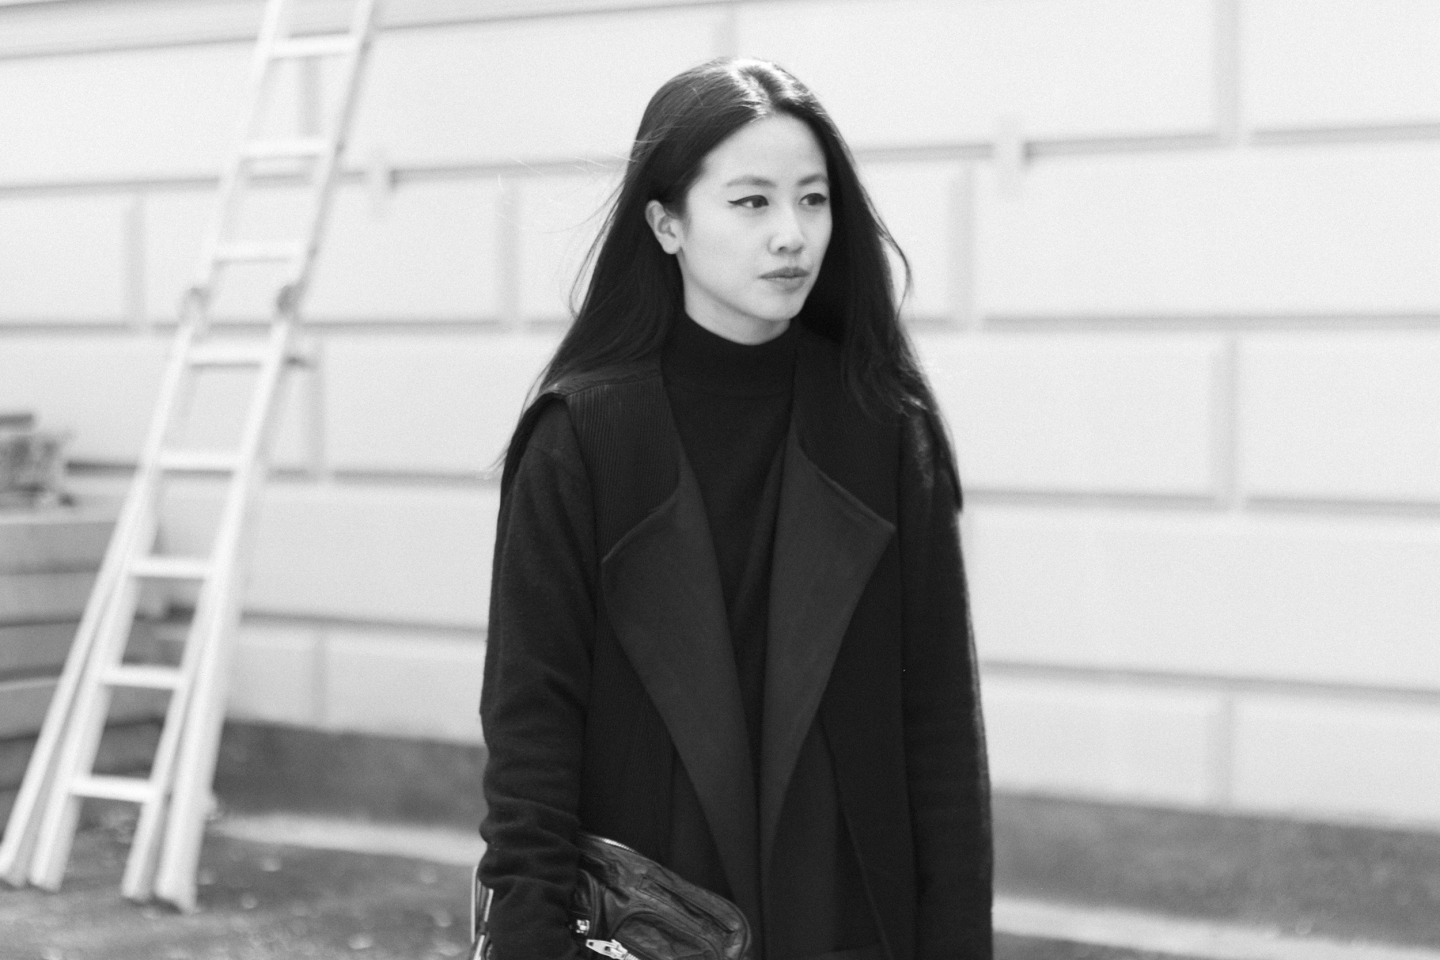 I HEART ALICE – Fashionblog from Berlin / Germany: Alice M. Huynh in Dandy Style, wearing Alice M. Huynh collection, Alexander Wang, Vintage, COS, Saint Laurent Paris